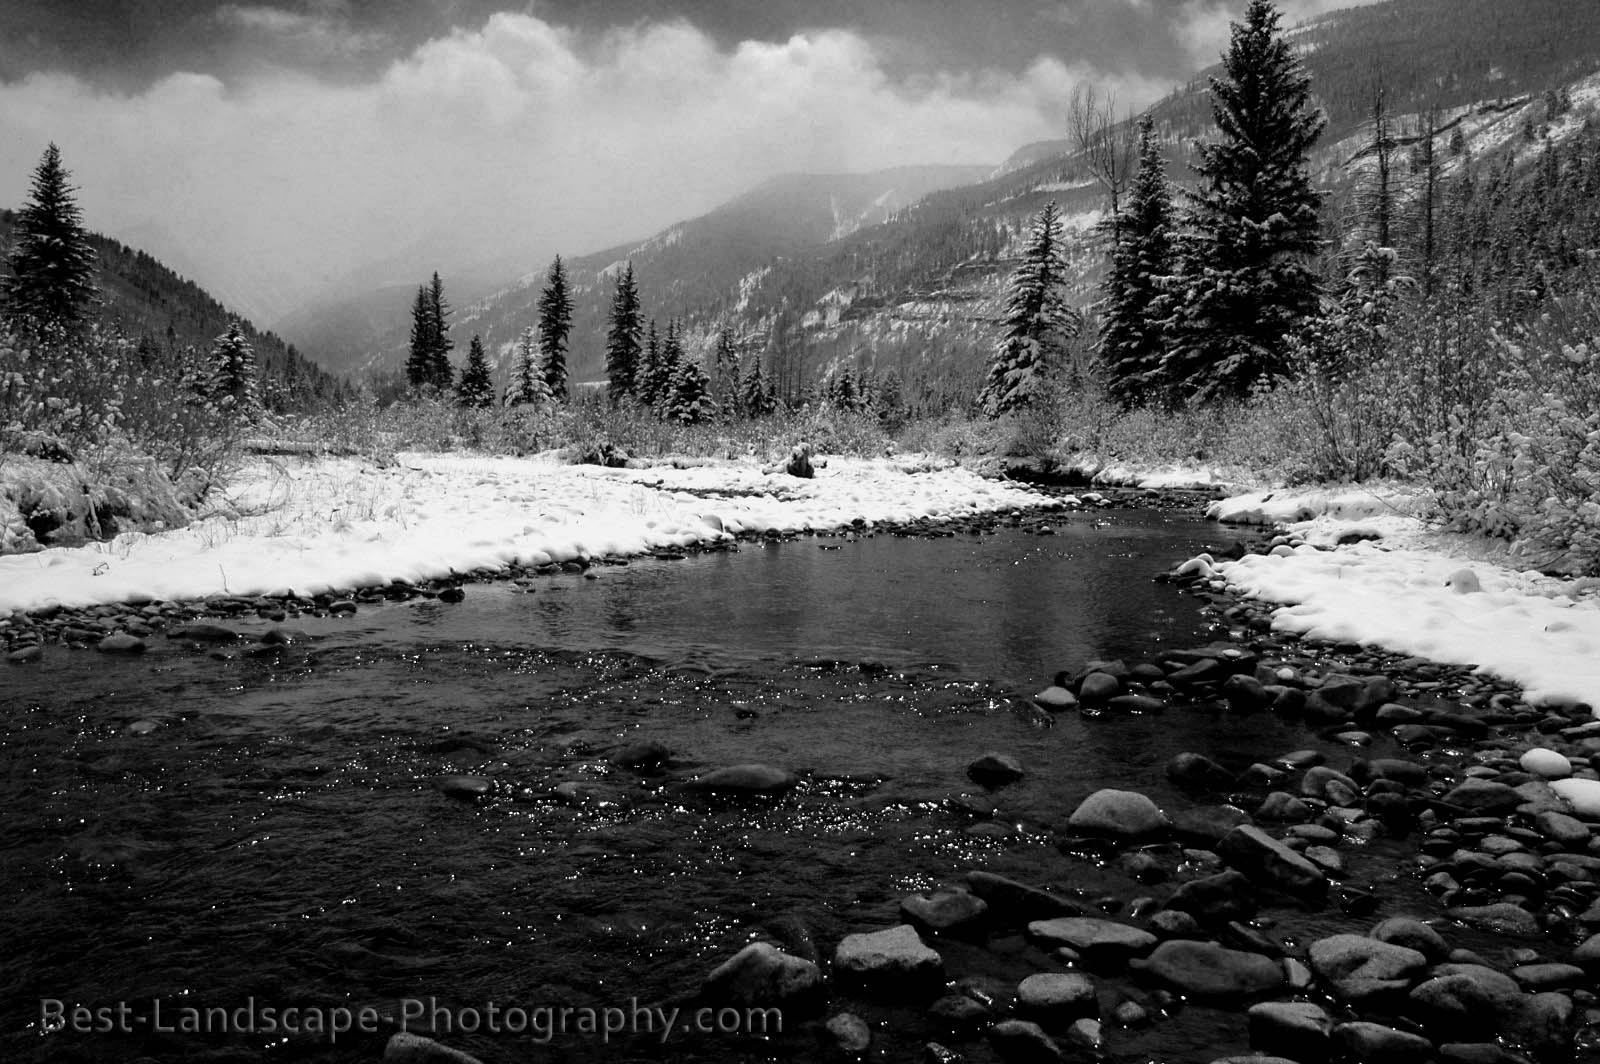 Frequent visitors to this photo blog know how much i like shooting black and white landscapes from late fall through early spring when the scenery is